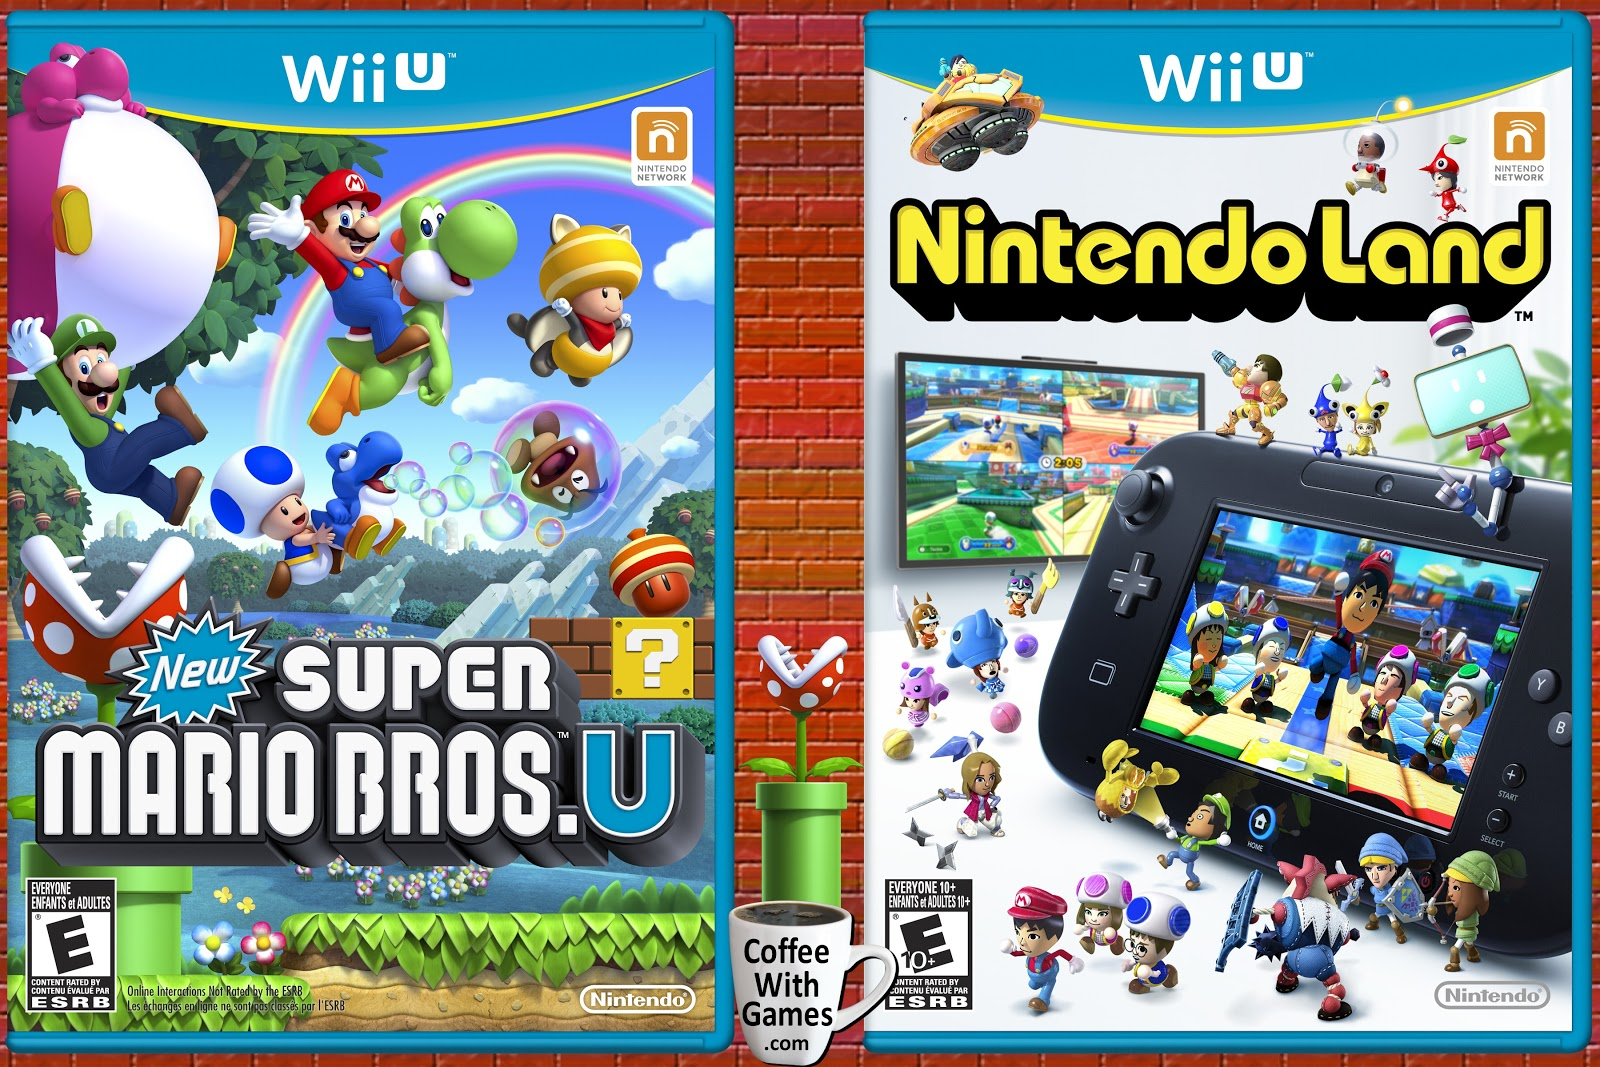 New Super Mario Bros. U to have online multiplayer?